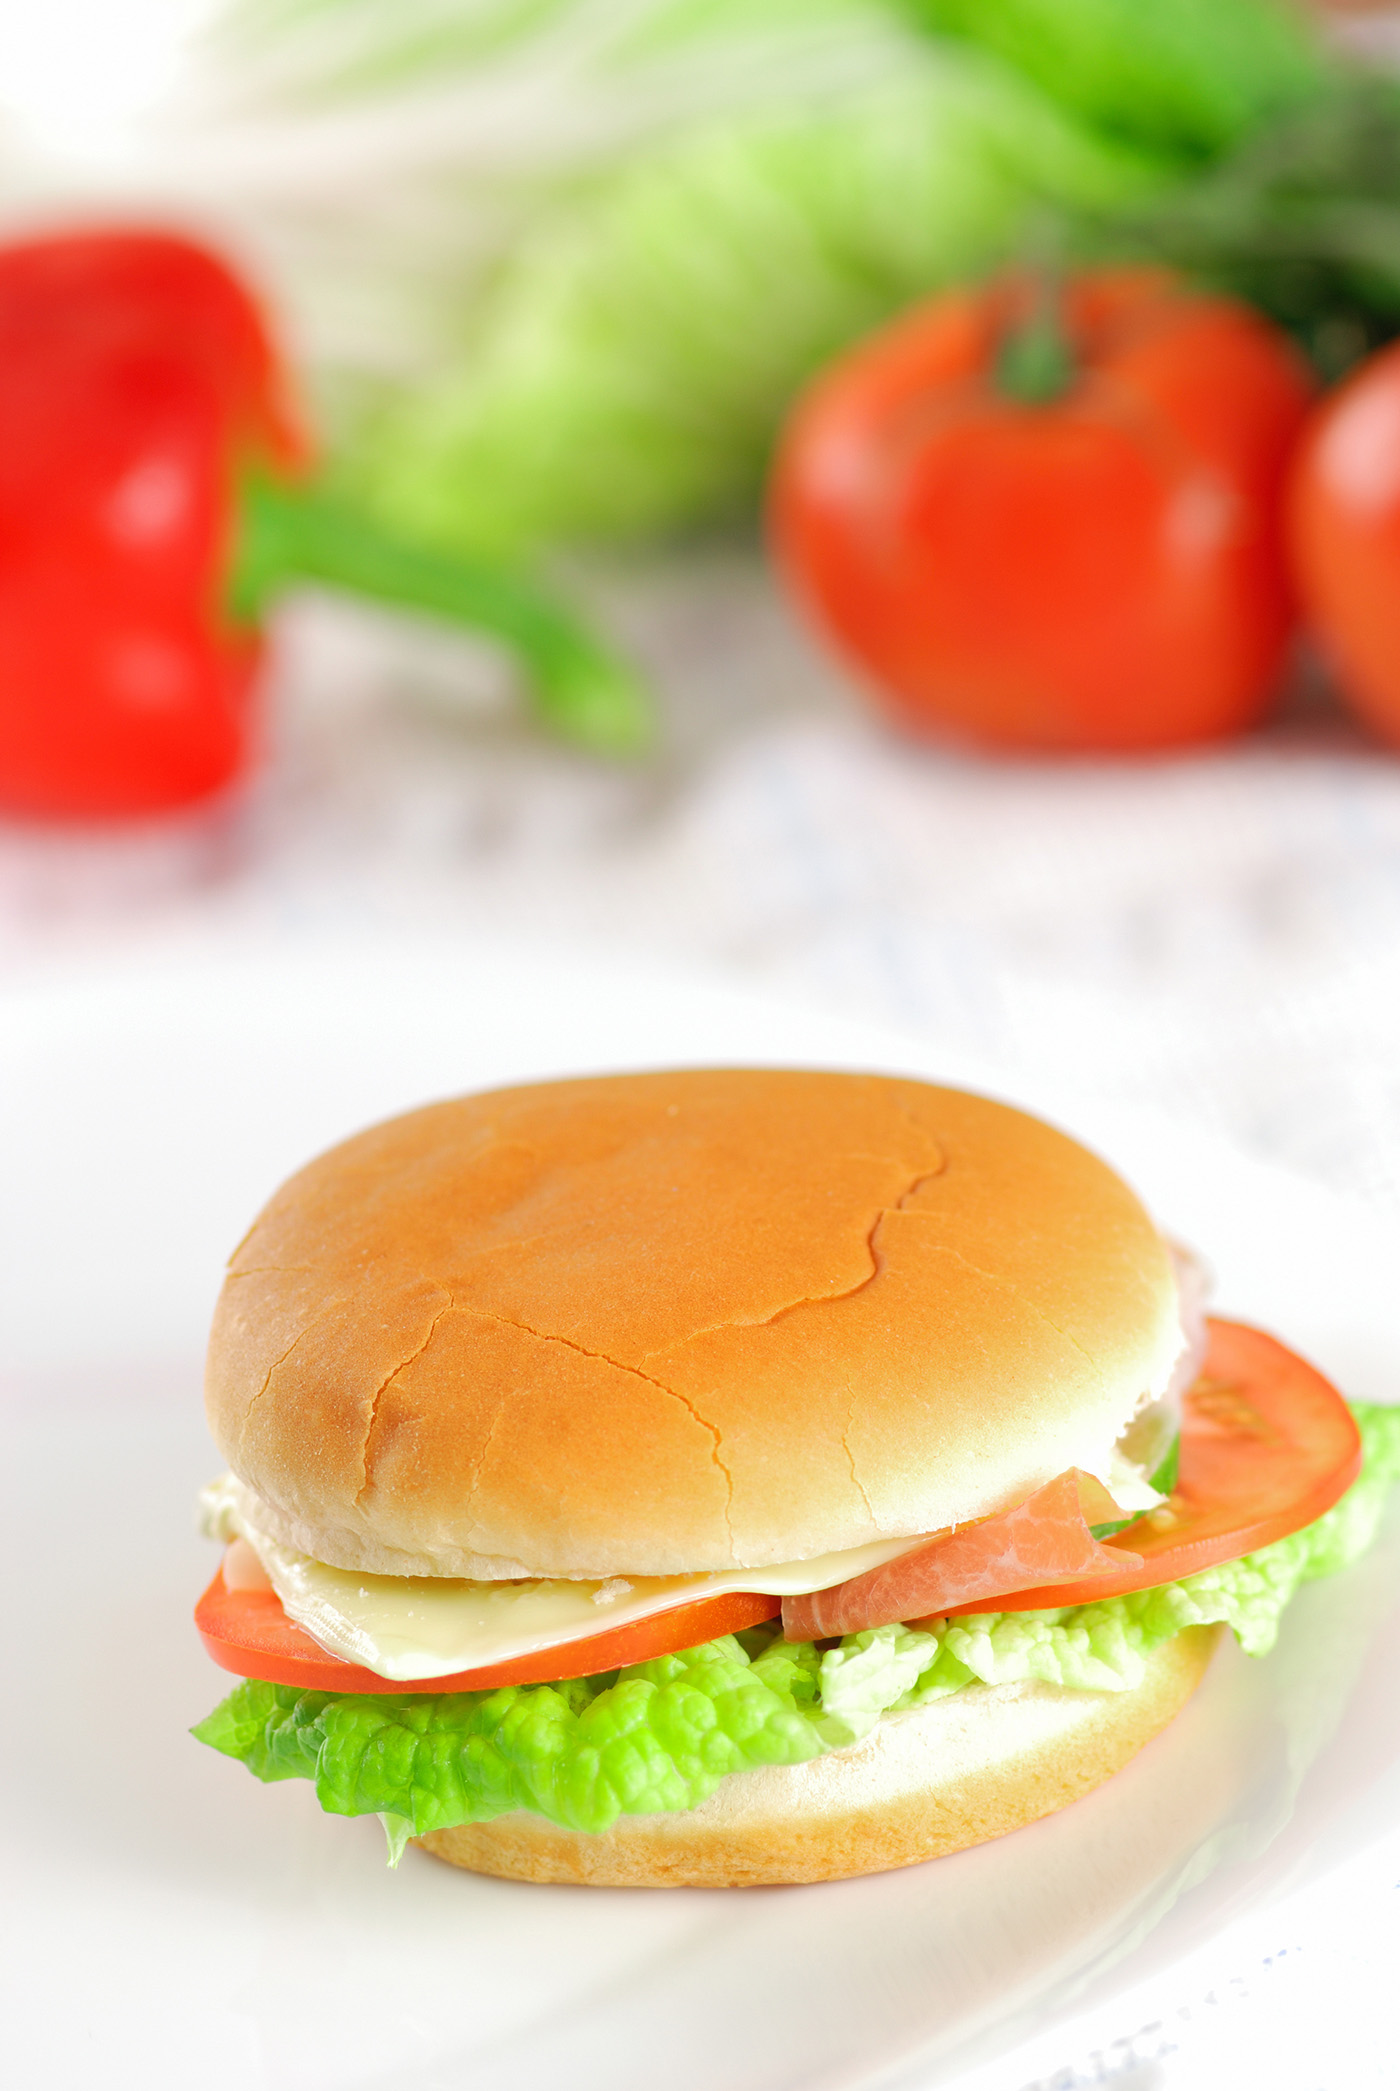 Soft texture of hamburger 50077